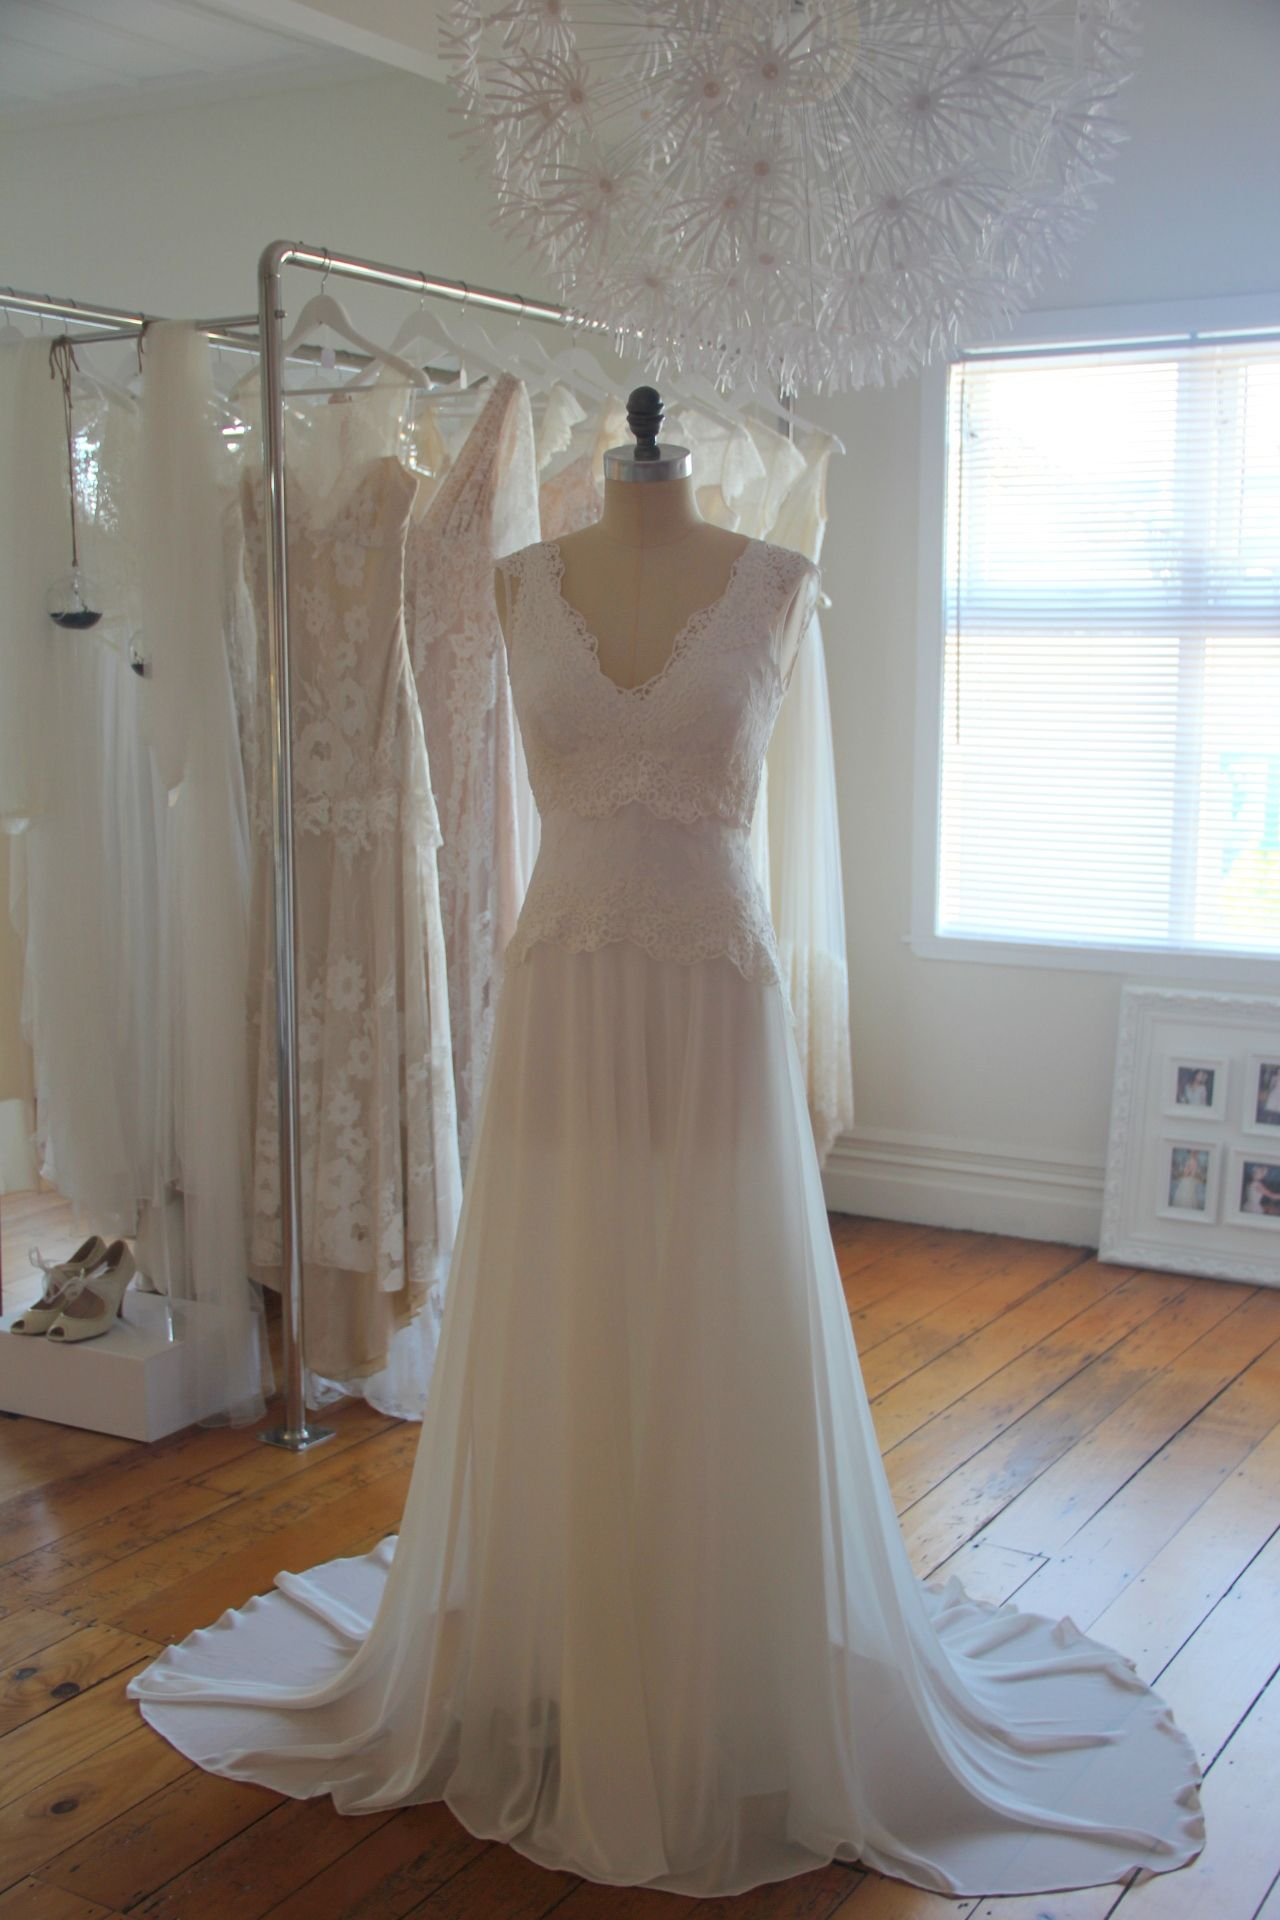 Johanna hehir jules we love this gorgeous gown that can come in